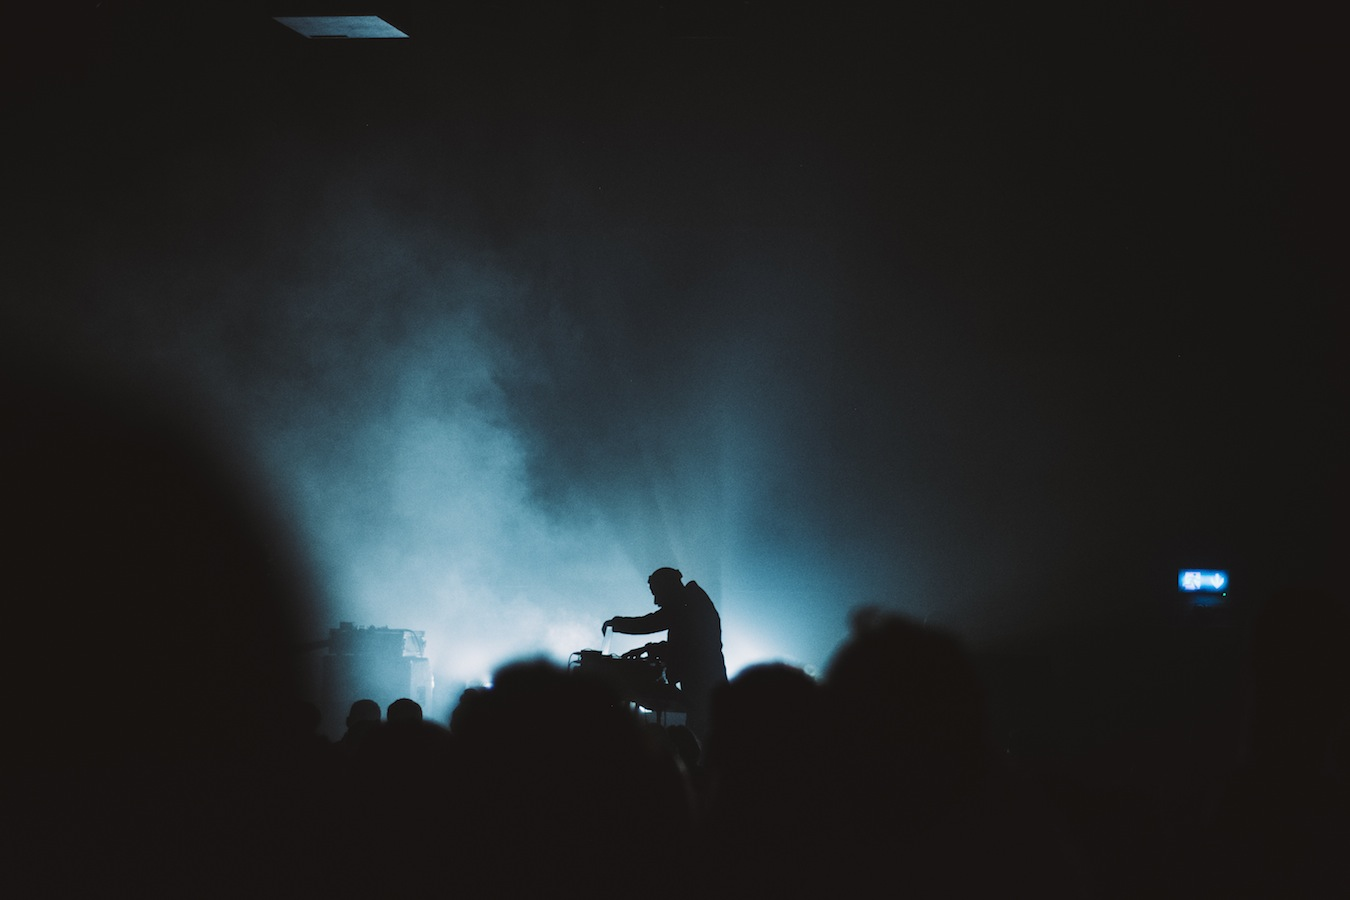 Forest Swords (Credit: Daniela Monteiro)